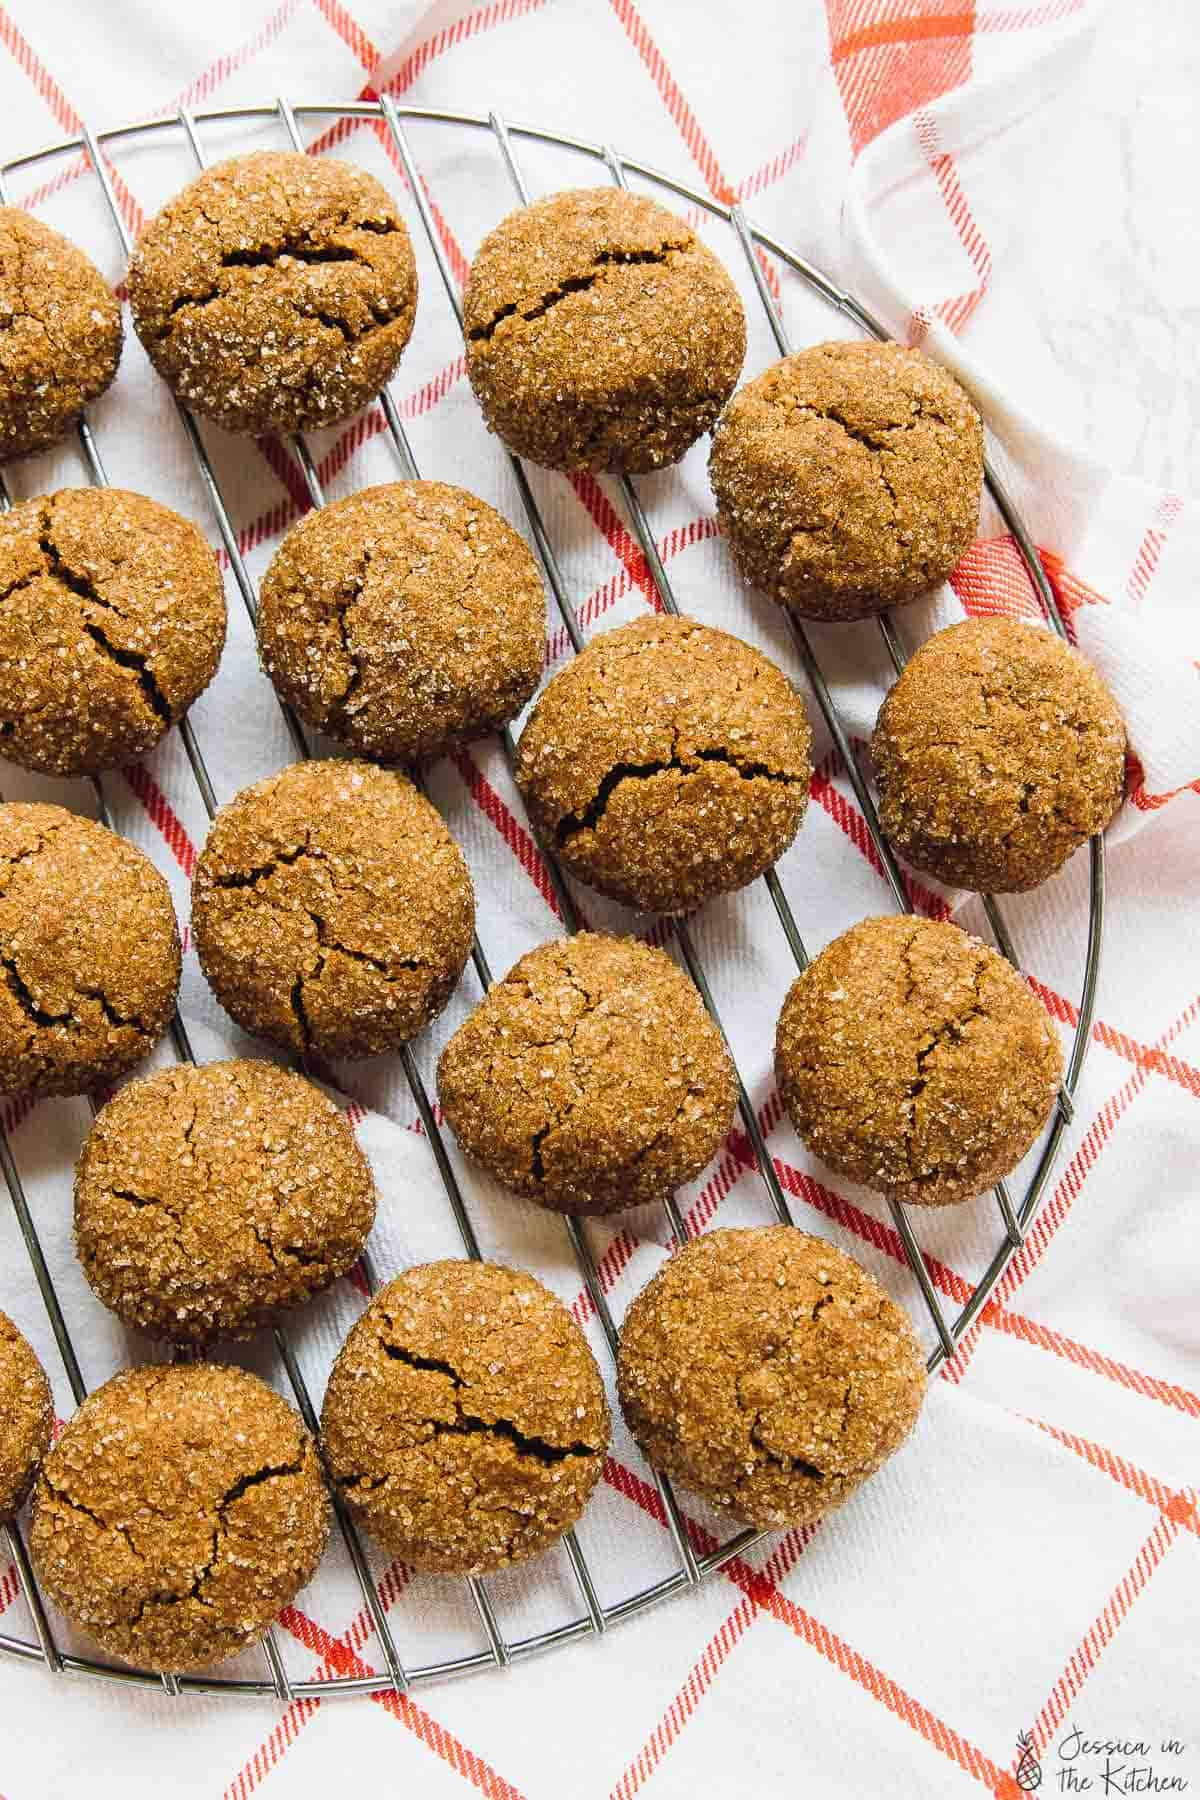 These Soft Chewy Gingersnap Molasses Cookies are a MUST make for the holidays! They are vegan, gluten free & made with unrefined ingredients! P.S. You can't eat just one!!